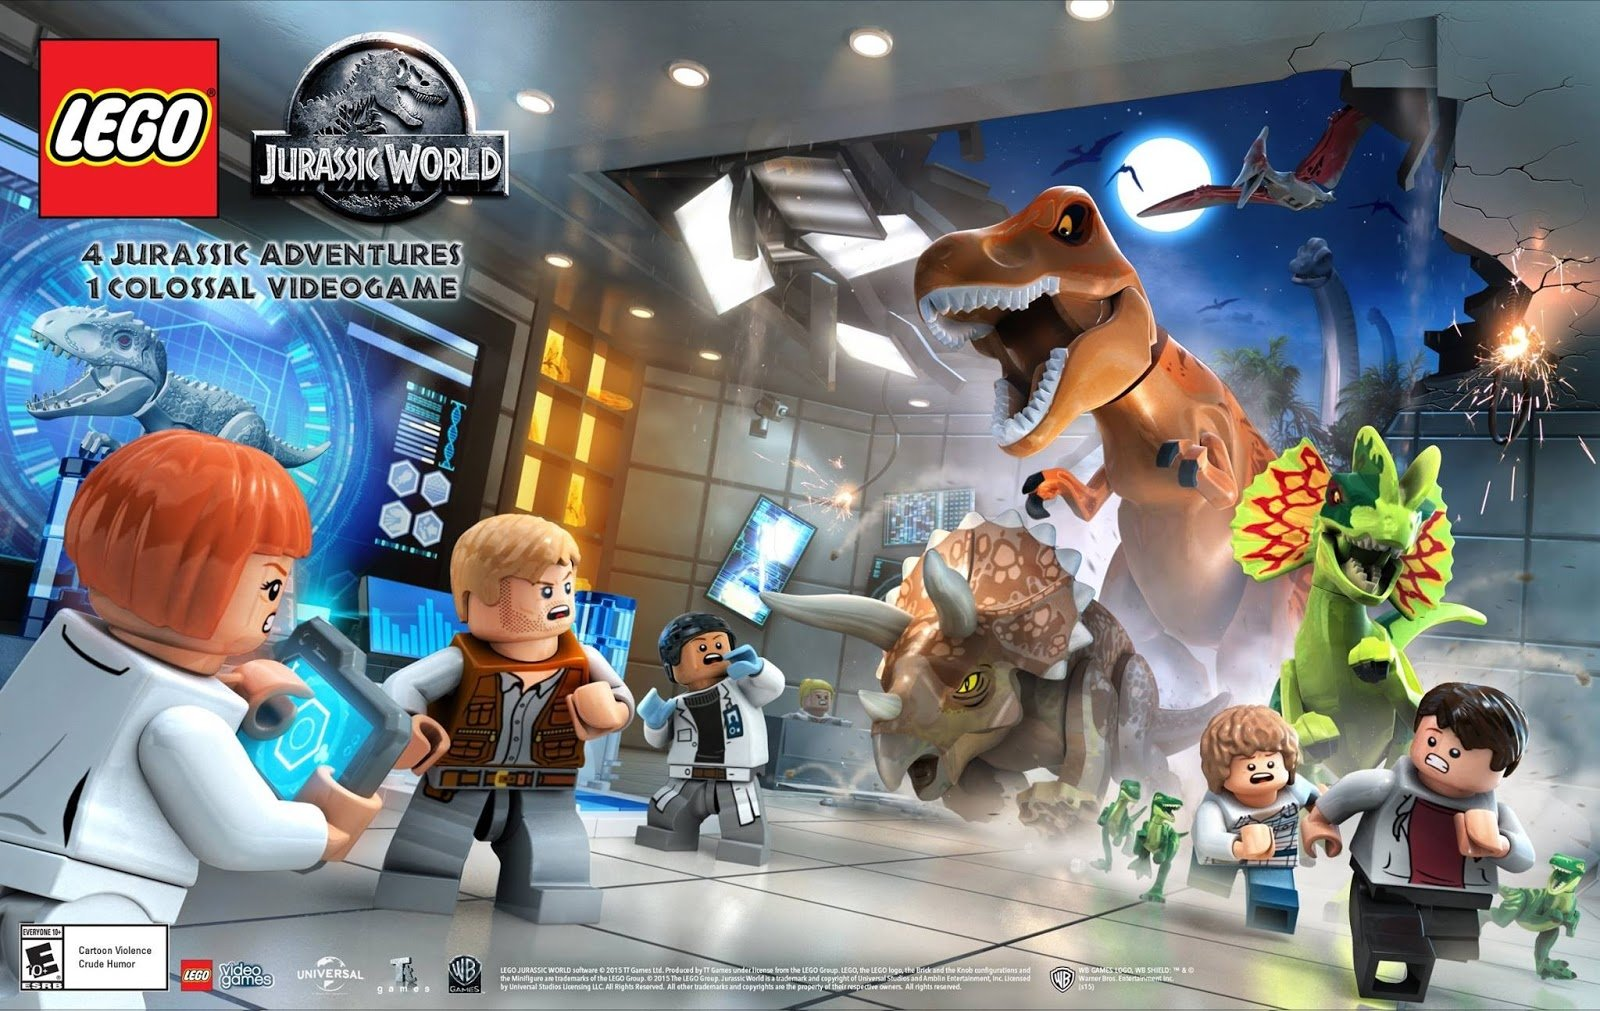 2 Lego Jurassic World Hd Wallpapers Background Images Wallpaper Ps4 Abyss